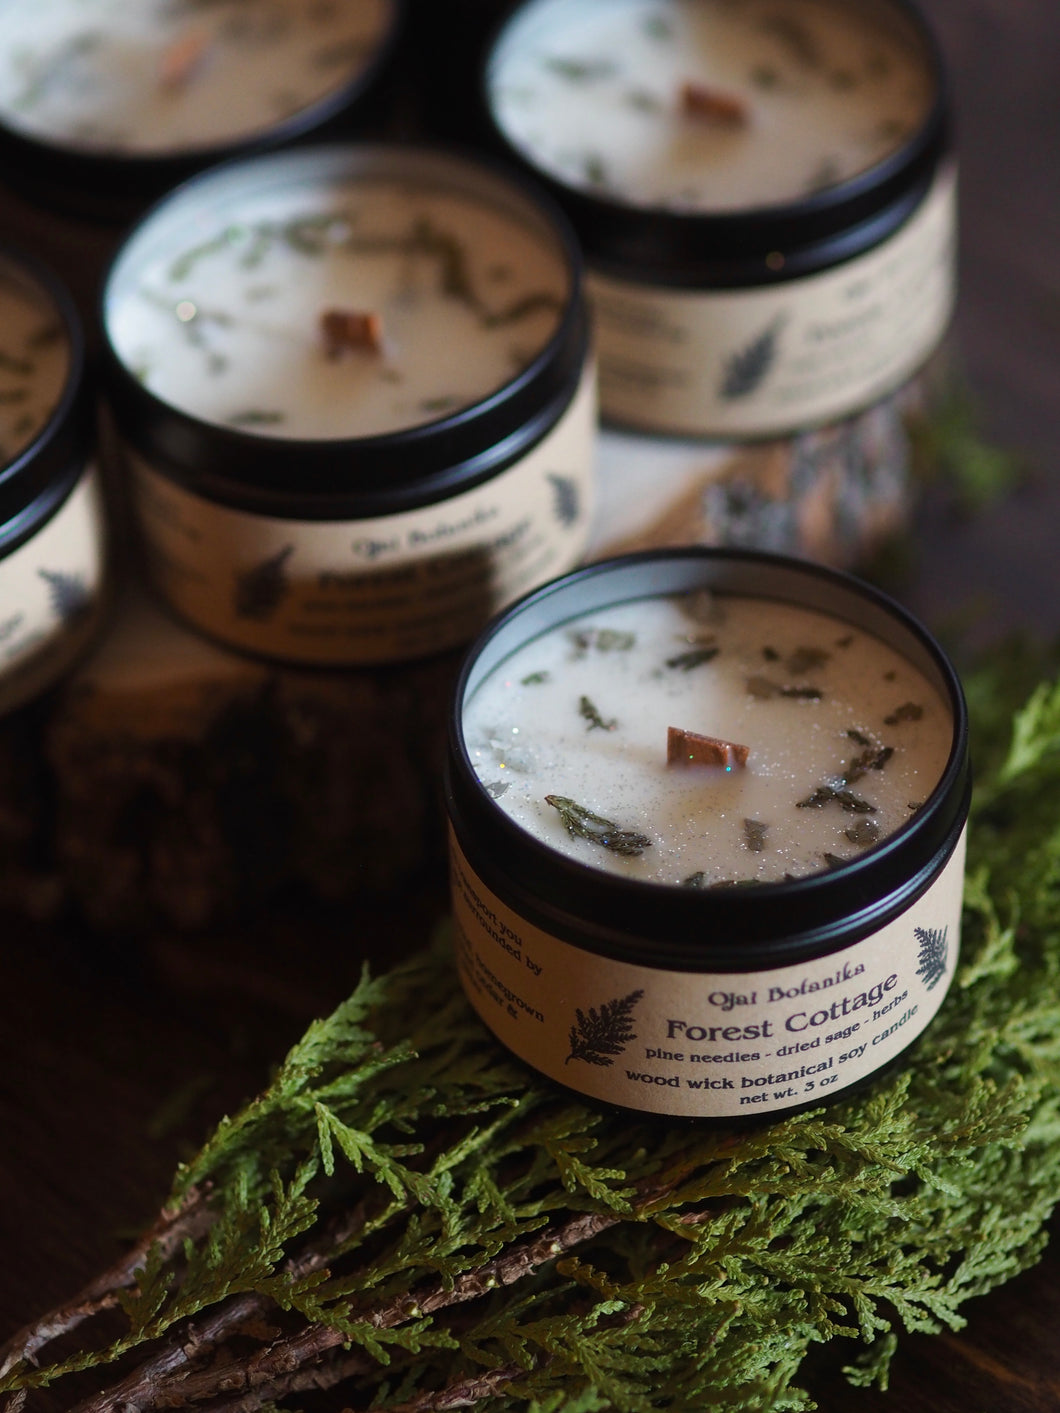 Forest Cottage - Pine Needle & Sage - Mini Wood Wick or Cotton Wick Soy Candle - Limited Edition